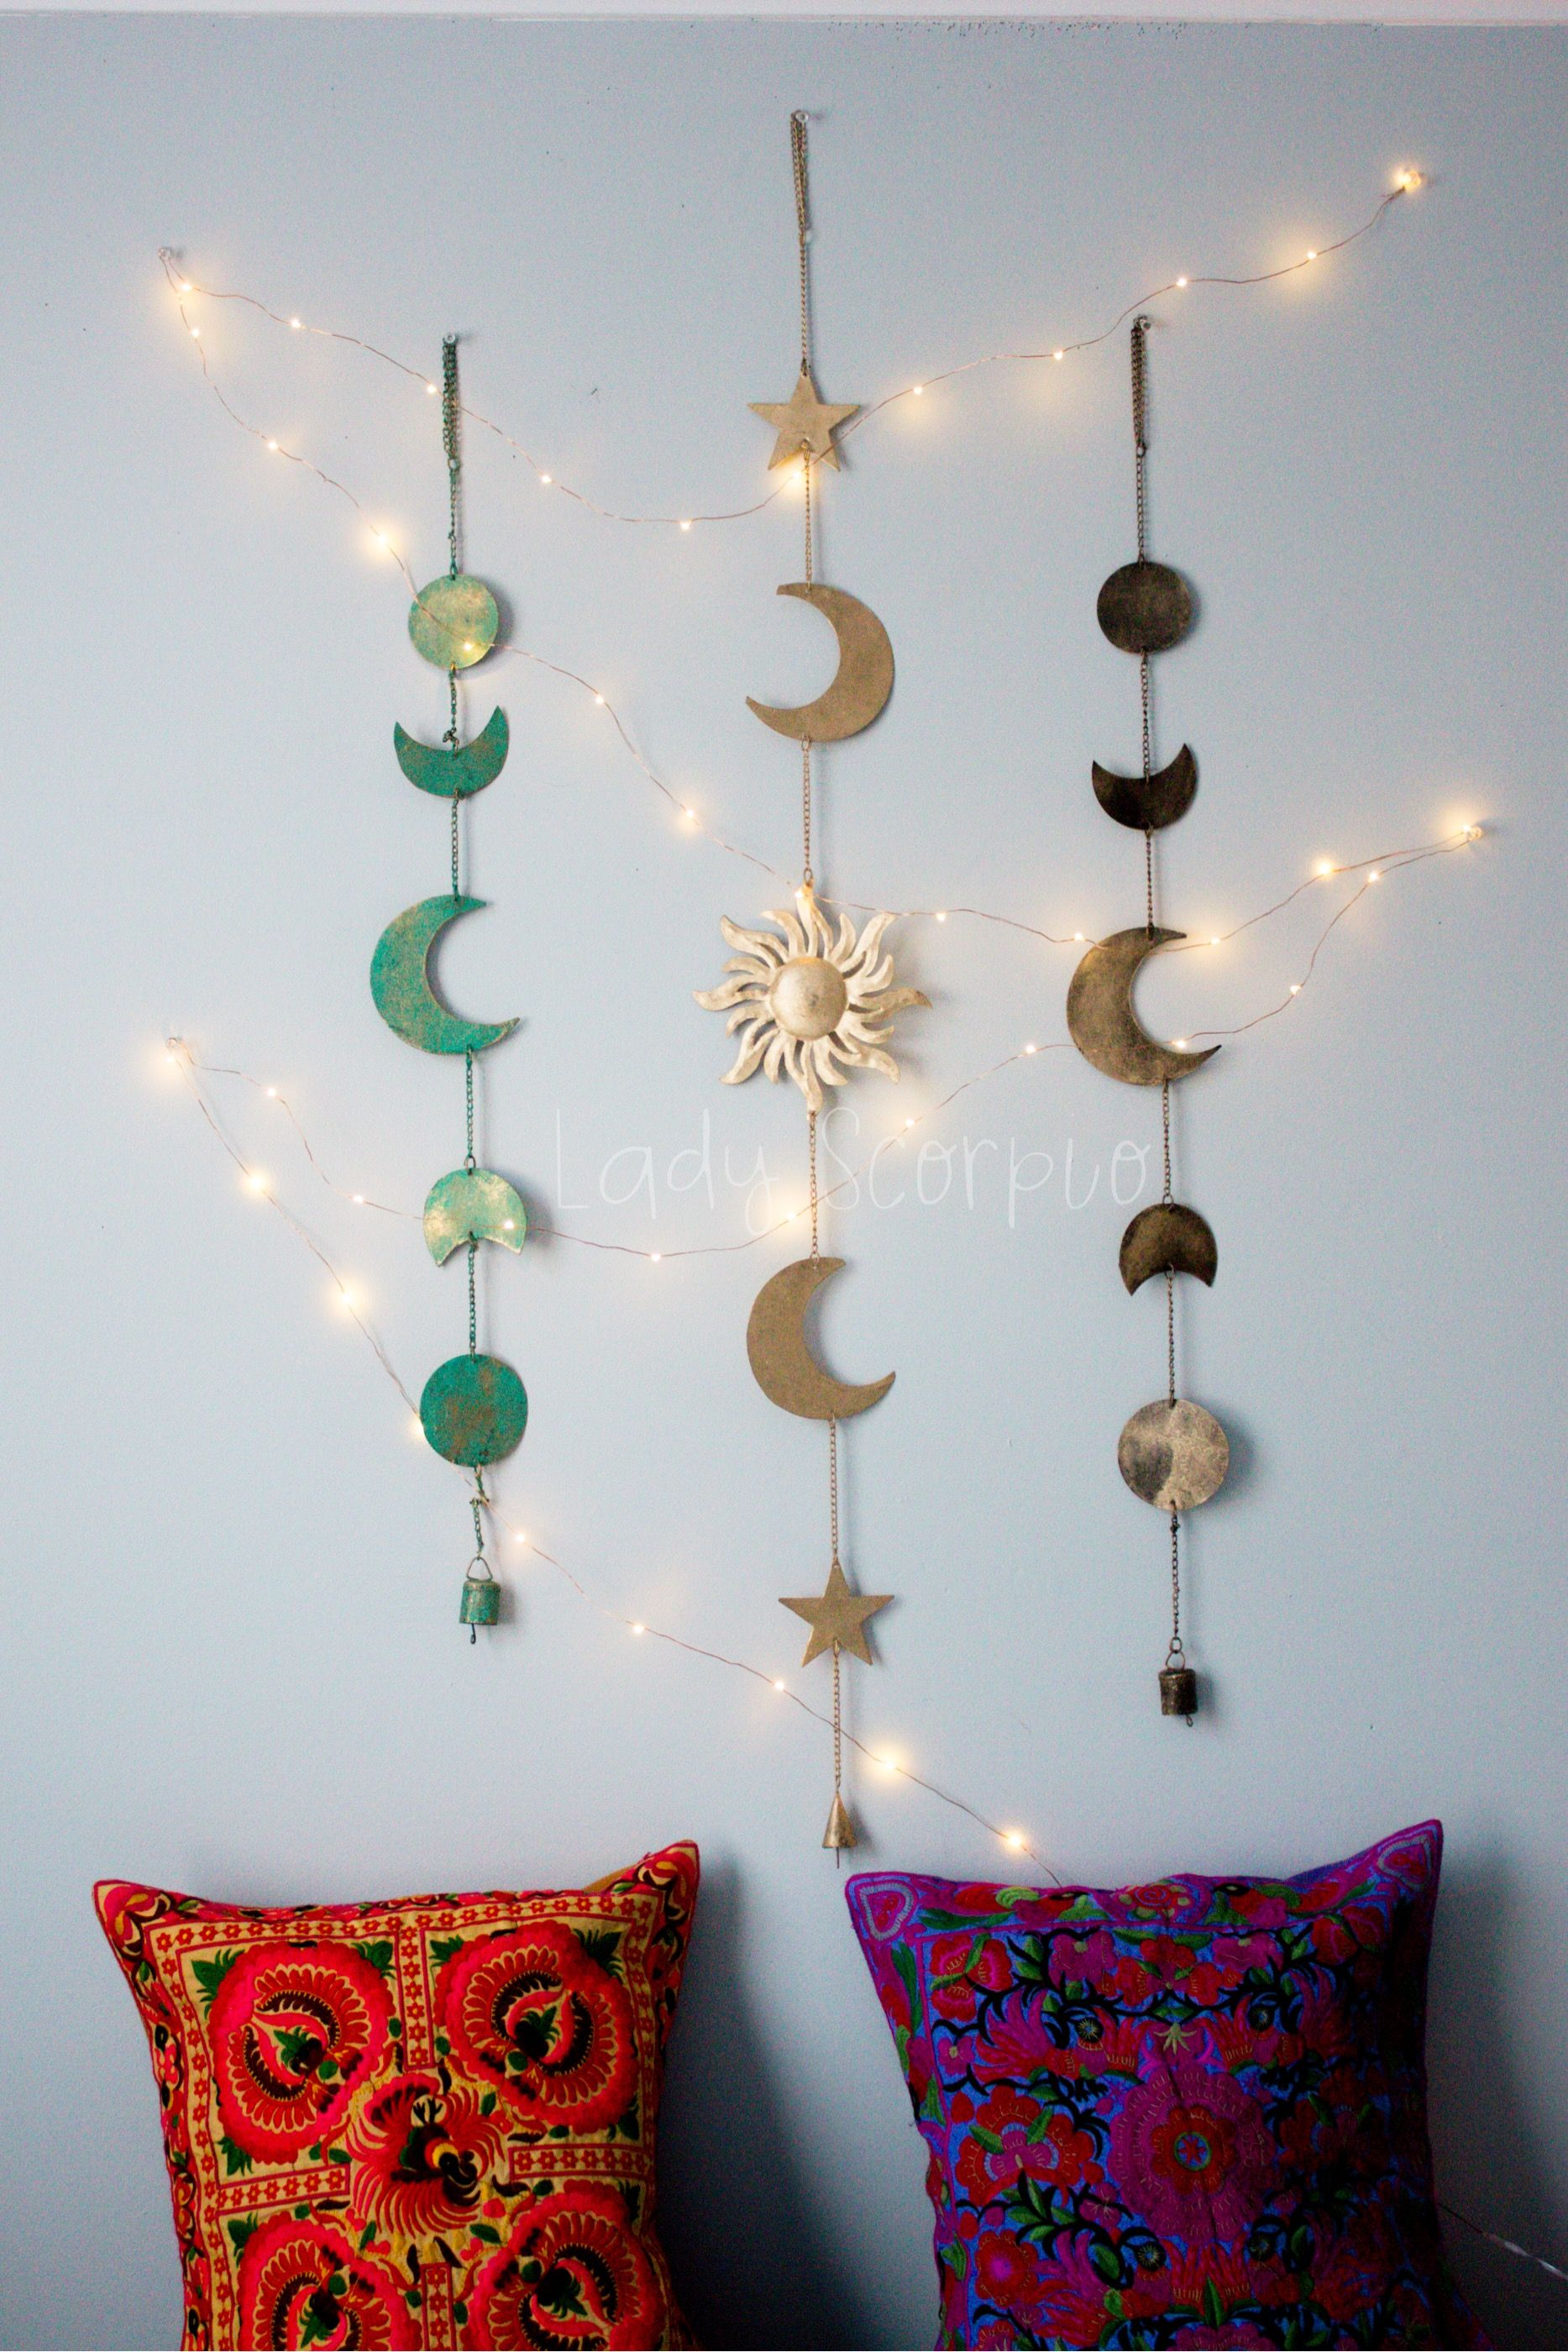 attractive Wall Hanging Decor Part - 11: ☾Moon Phases - Sun Moon Stars Wall Hanging Decor + Twinkle Lights by Lady  Scorpio | Shop Now LadyScorpio101.com | @LadyScorpio101 | Photography by  Luna ...